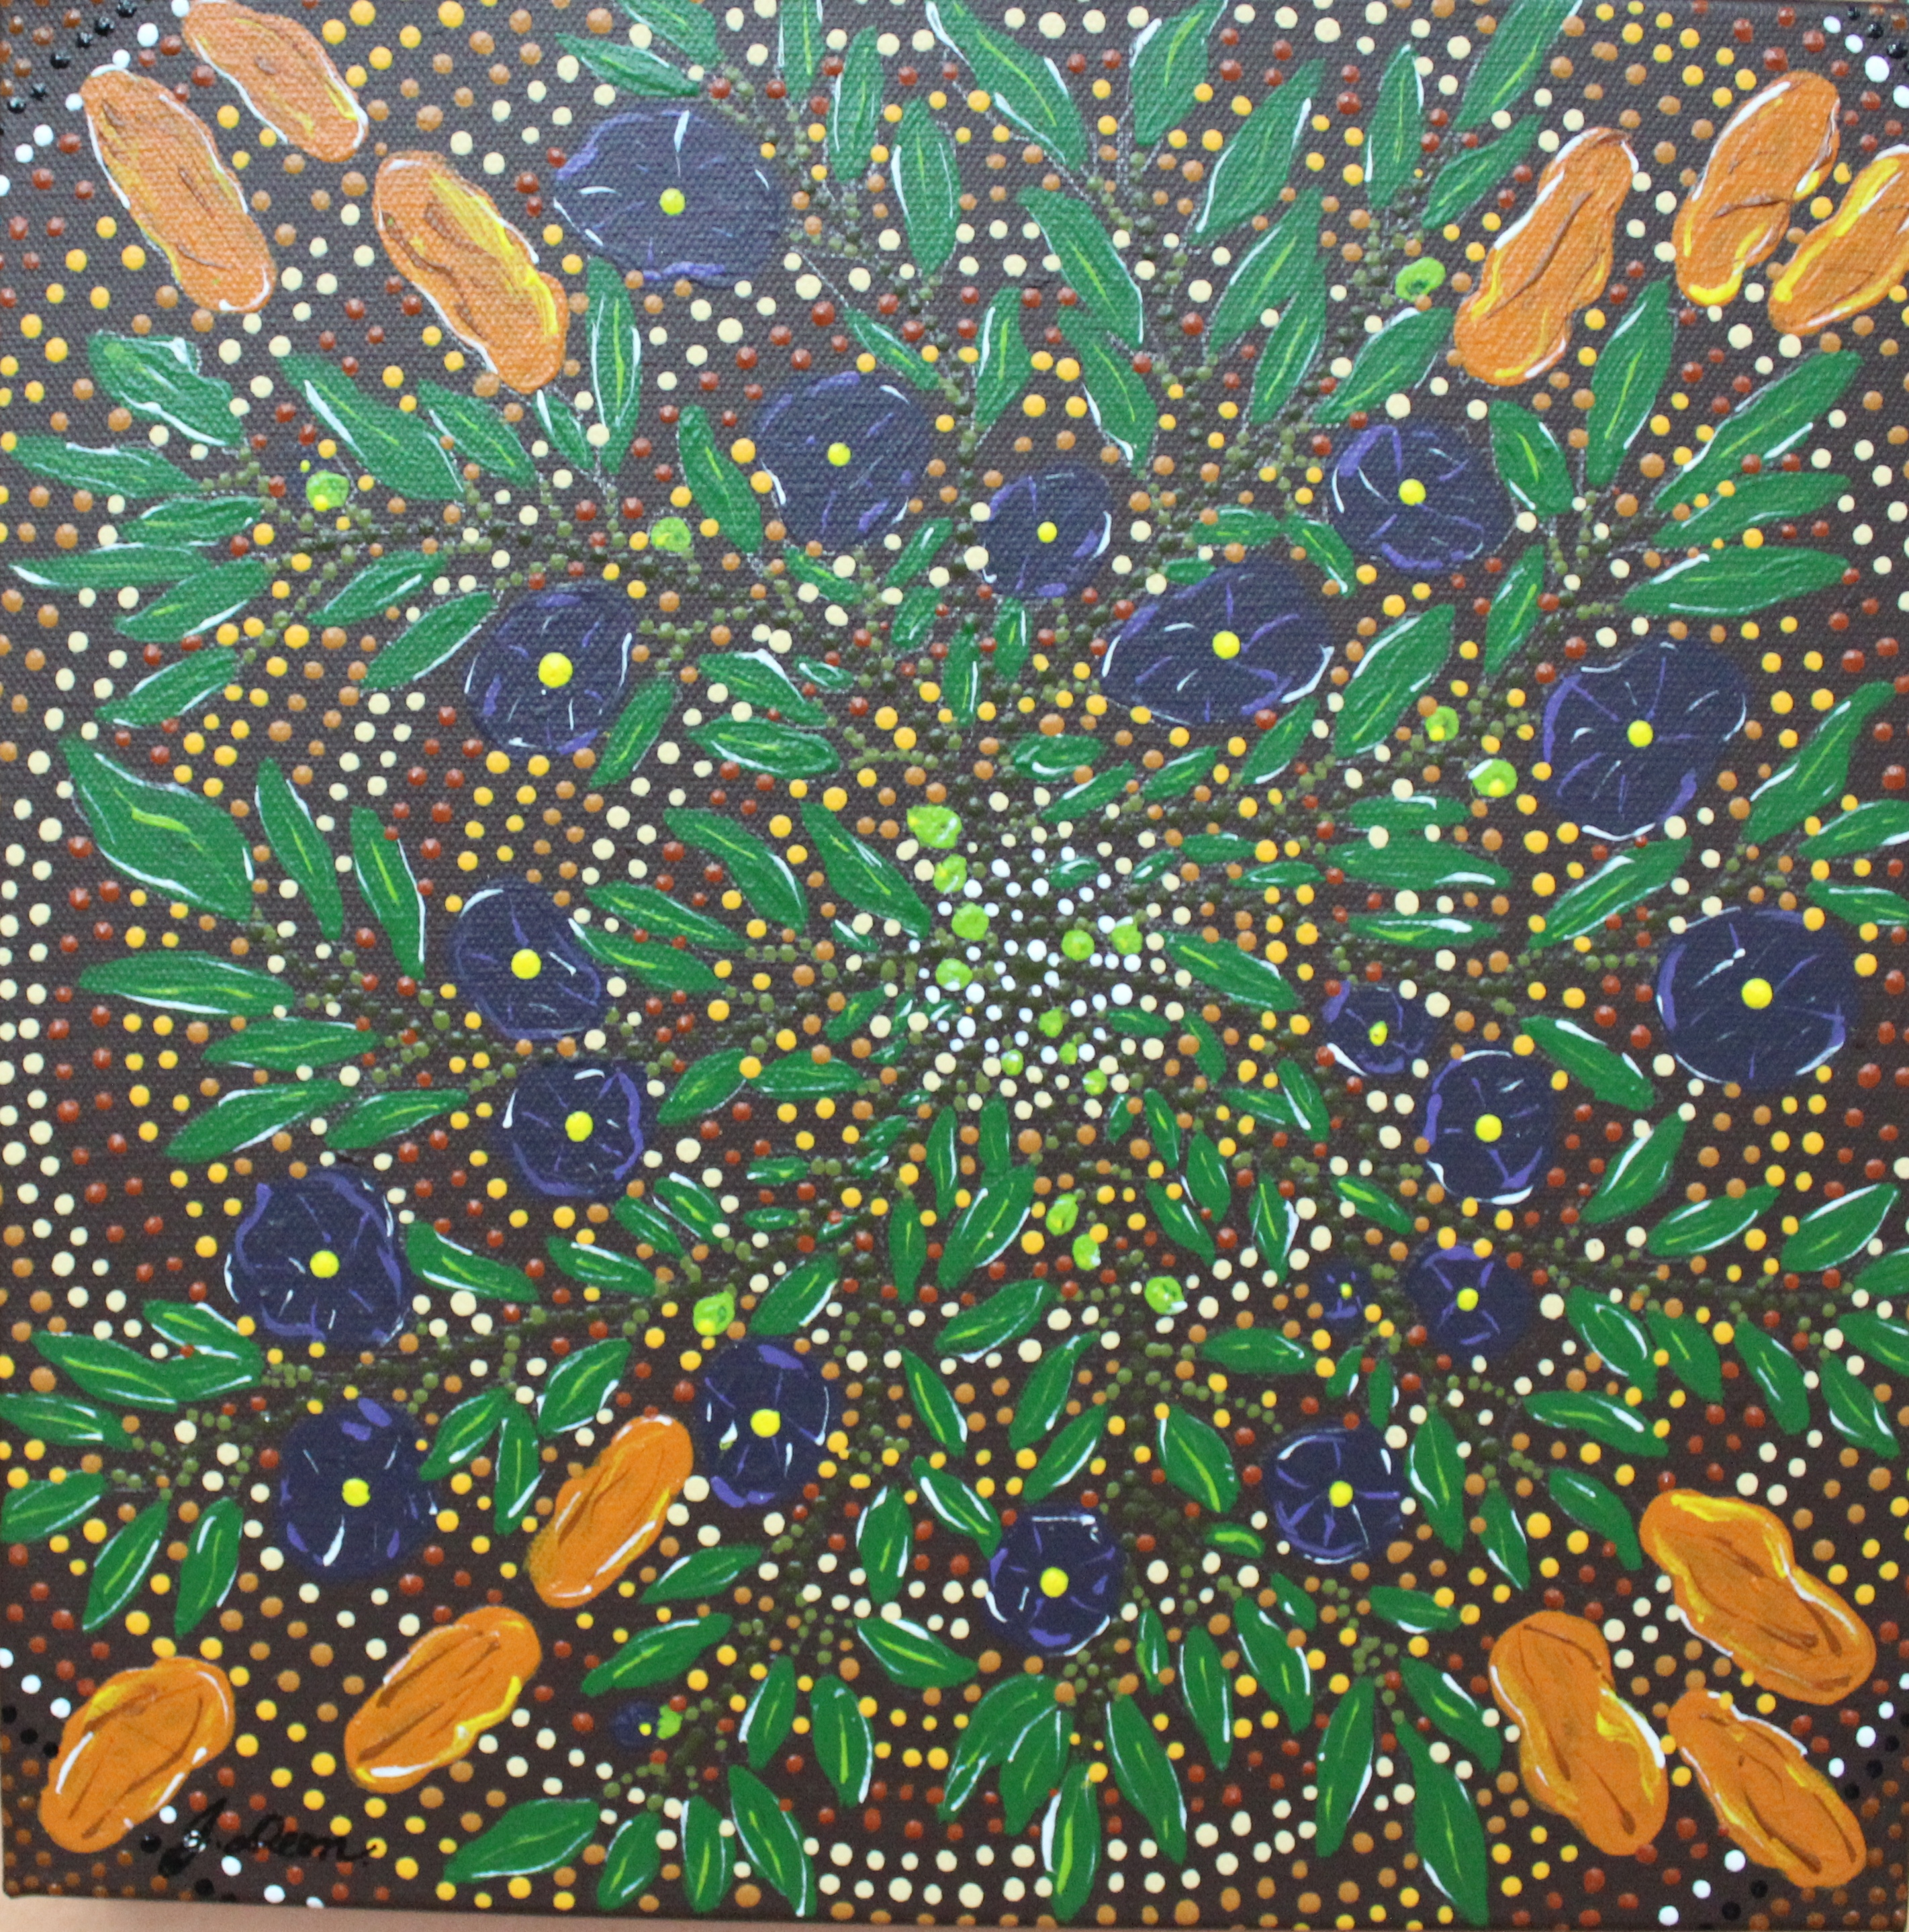 Art blog archives dnaag aboriginal art gallery i would like to wish all our artists and supporters of the gallery a very happy new year i personally am stepping down as gallery director and wish the solutioingenieria Choice Image